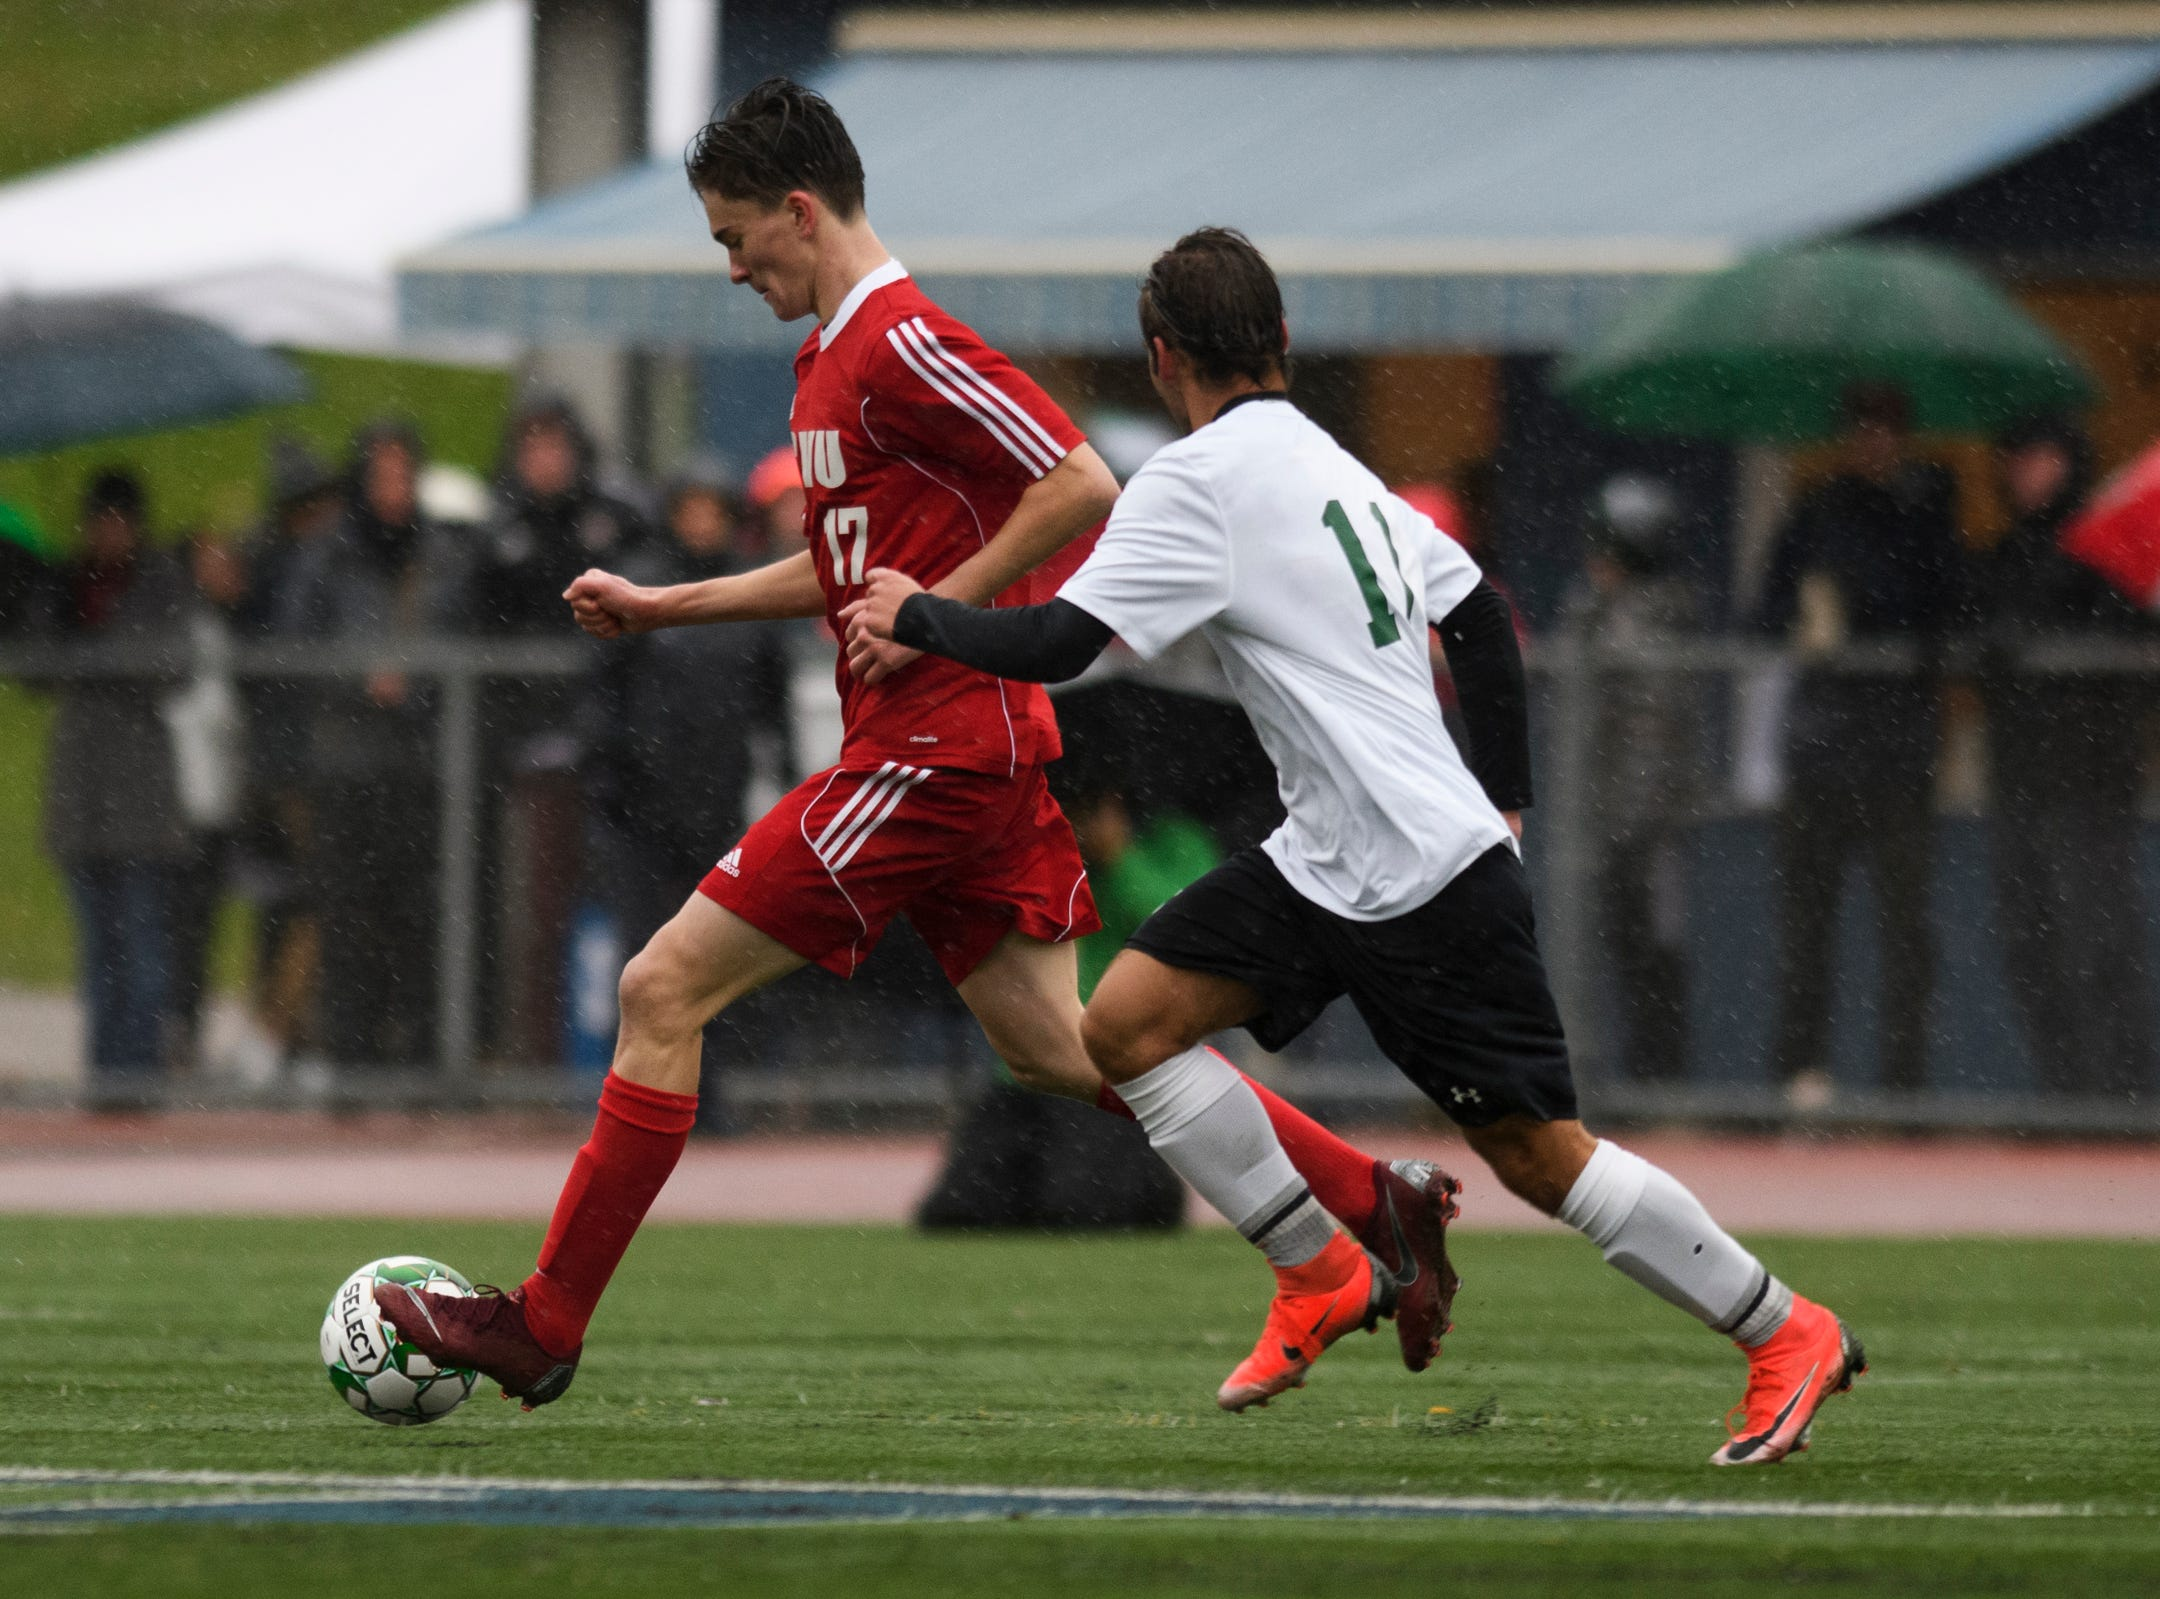 CVU's Nathaniel Sampson (17) runs past St, Johnsbury's Pablo Gonzalez-Rotger (11) with the ball during the Division I boys soccer championship game between the St. Johnsbury Hilltoppers and the Champlain Valley Union Redhawks at Buck Hard Field on Saturday morning November 3, 2018 in Burlington.